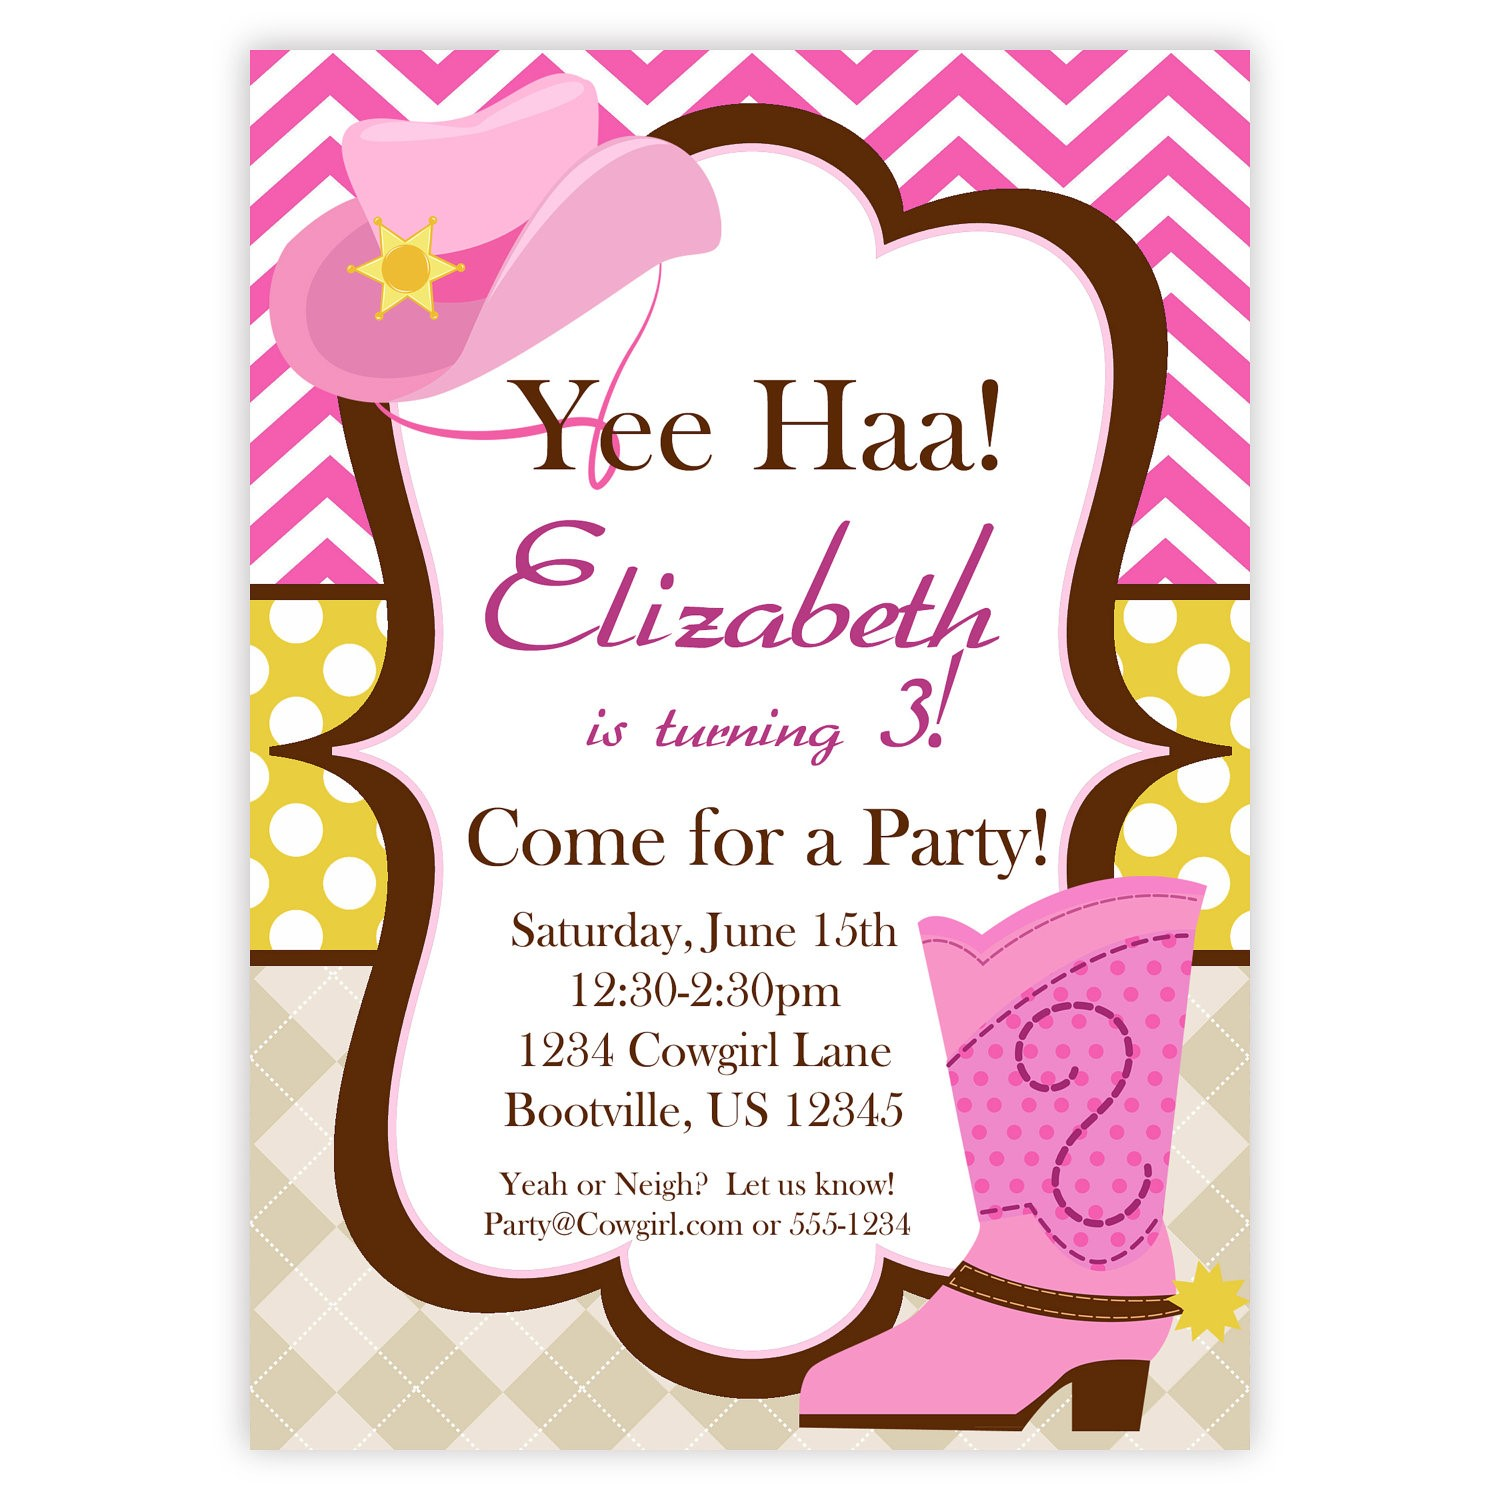 free printable cowgirl birthday party invitations ; Cozy-Cowgirl-Party-Invitations-As-An-Extra-Ideas-About-Free-Printable-Party-Invitations